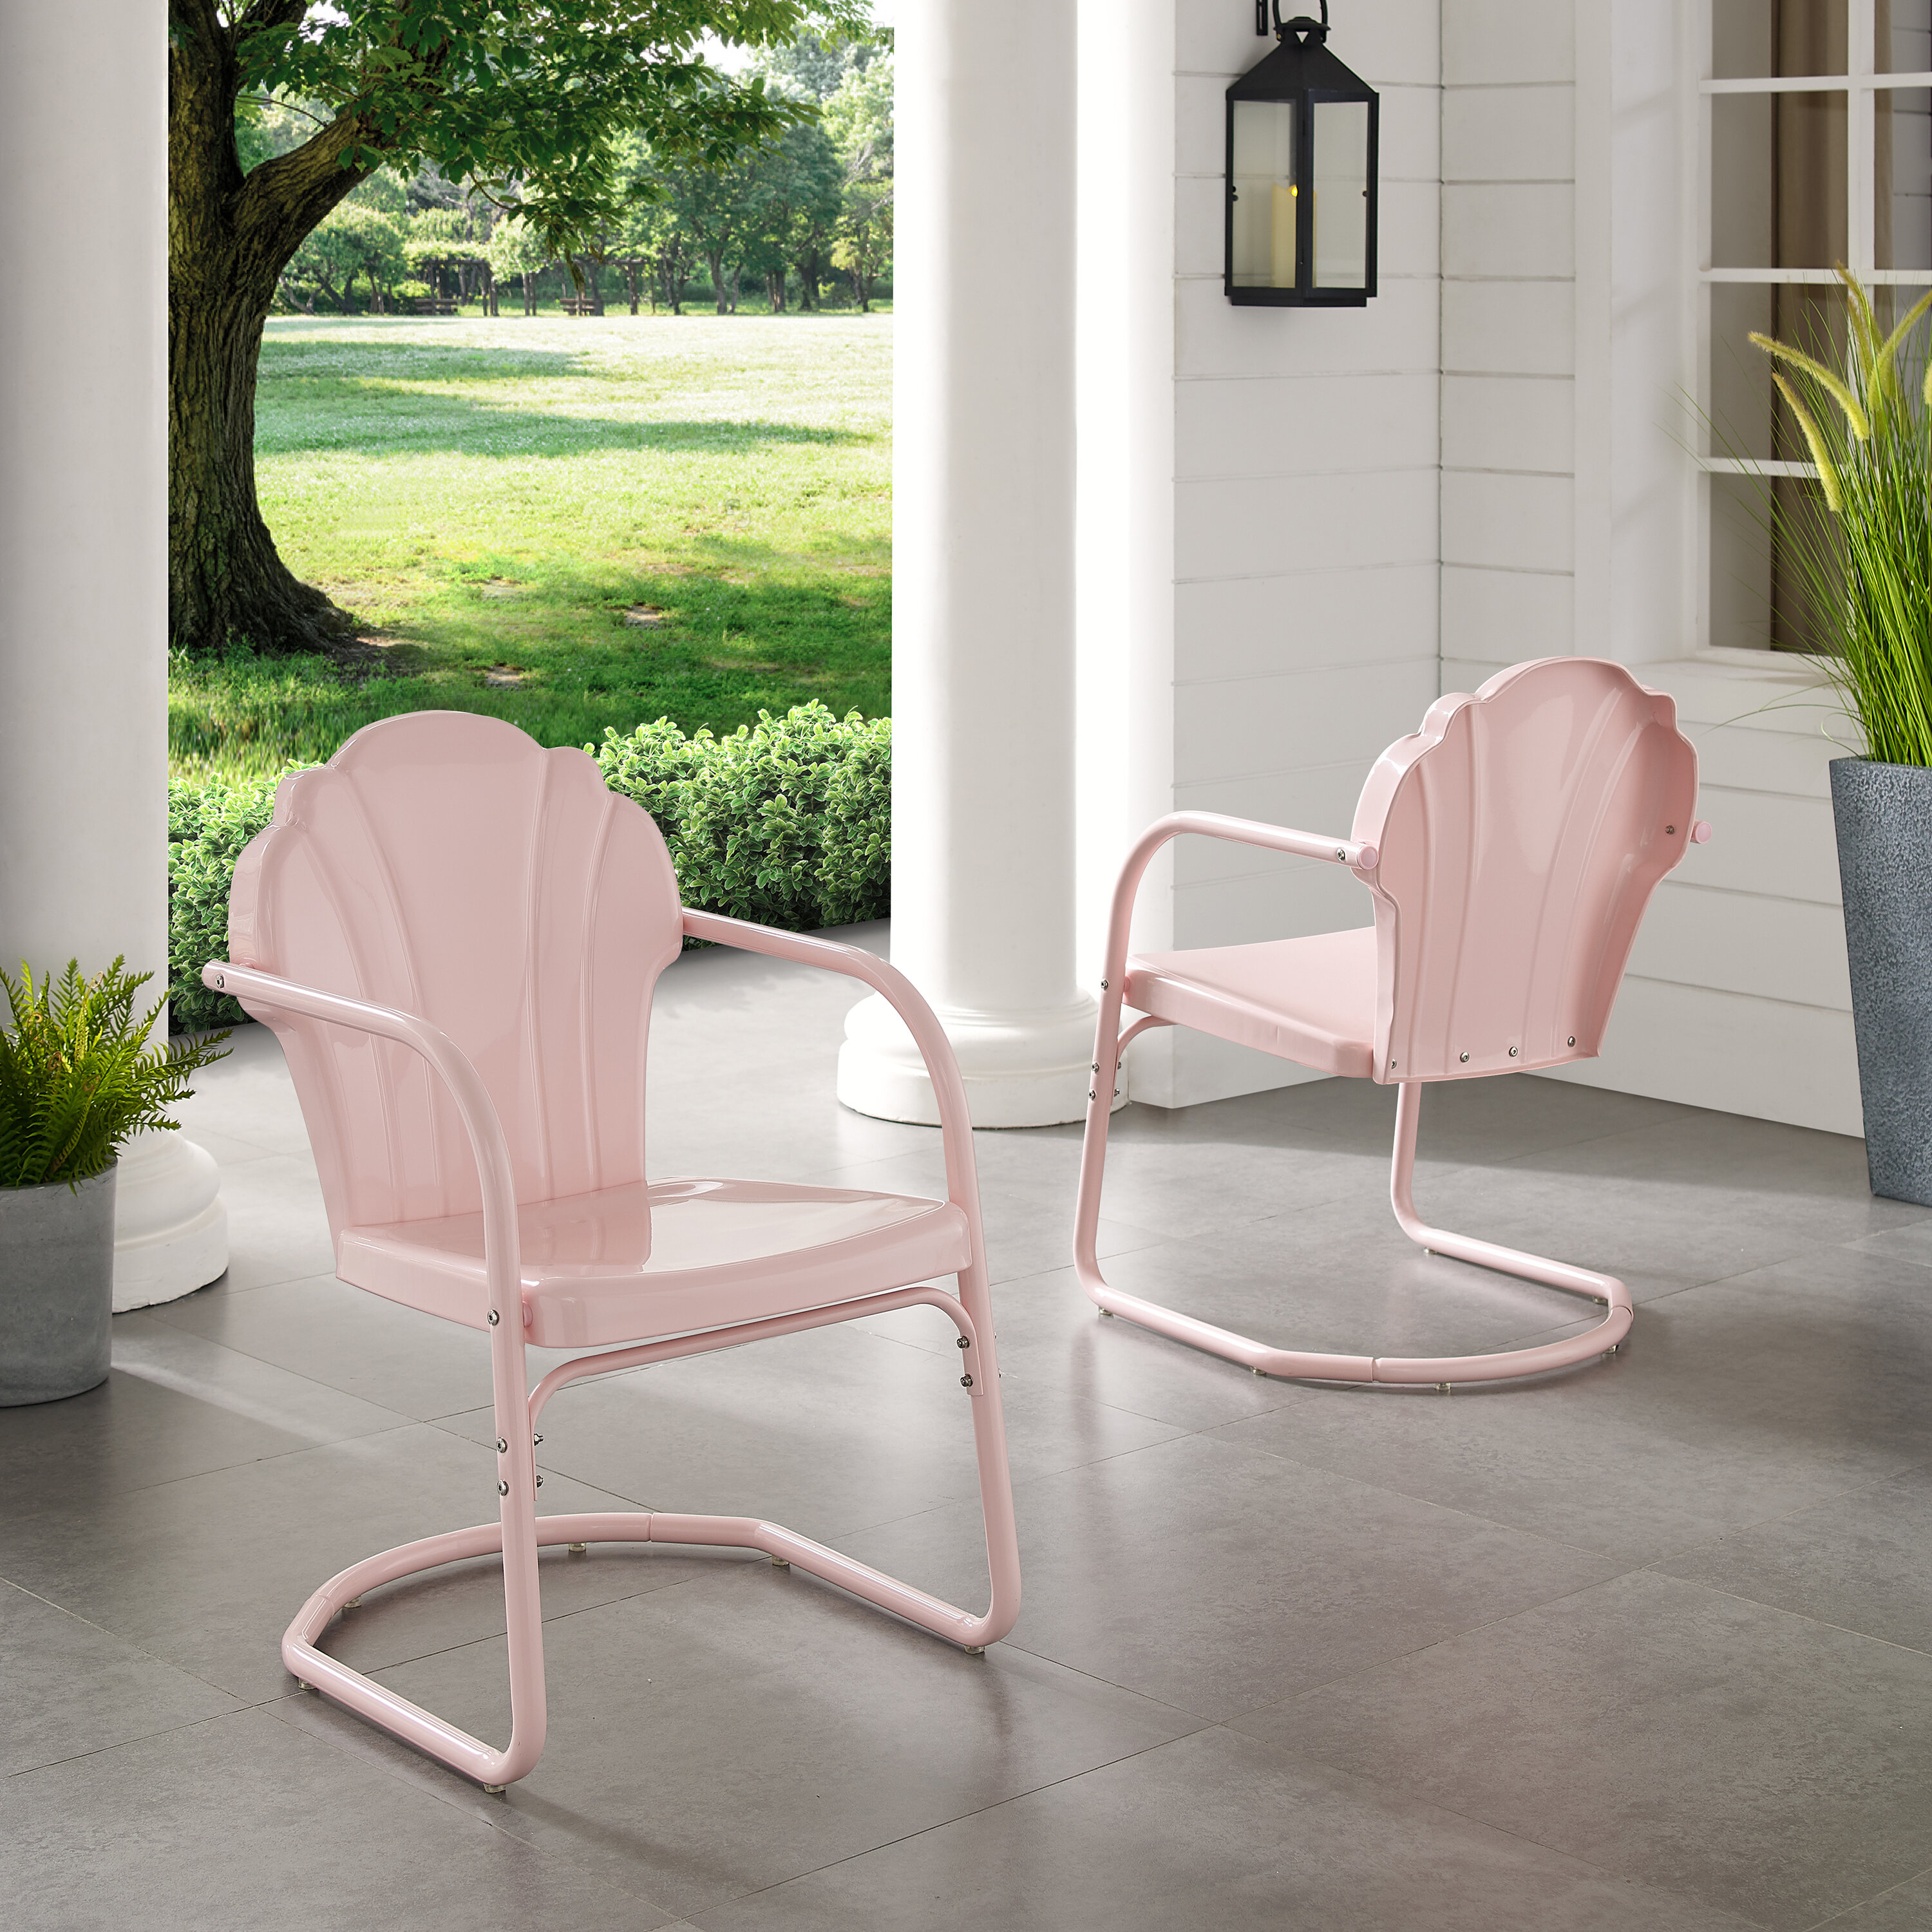 Fantastic Retro Metal Patio Chairs Wayfair Complete Home Design Collection Papxelindsey Bellcom